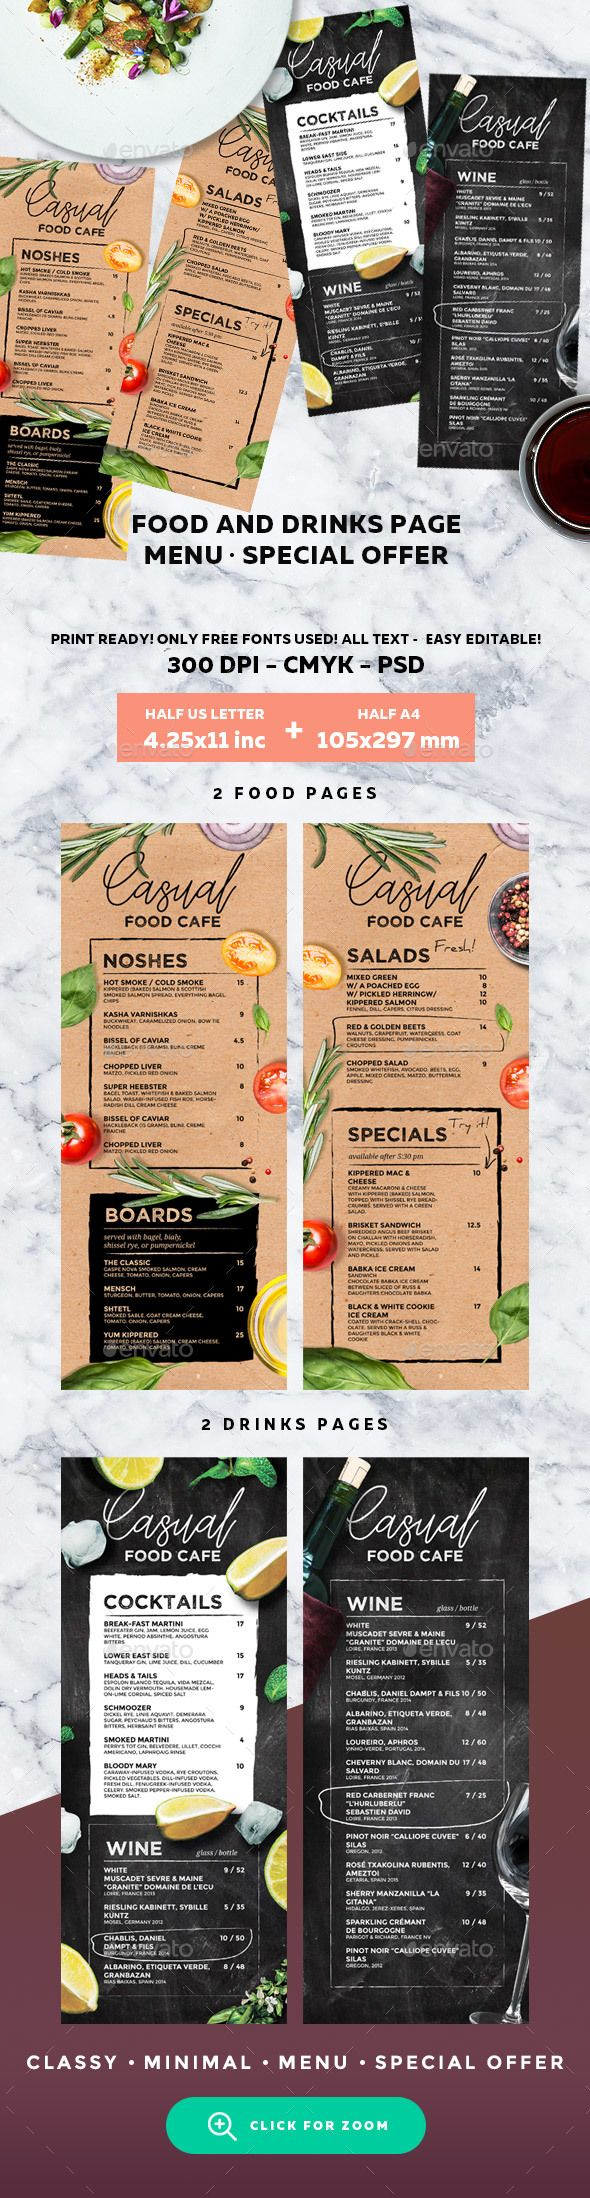 Best ideas about menu design on pinterest